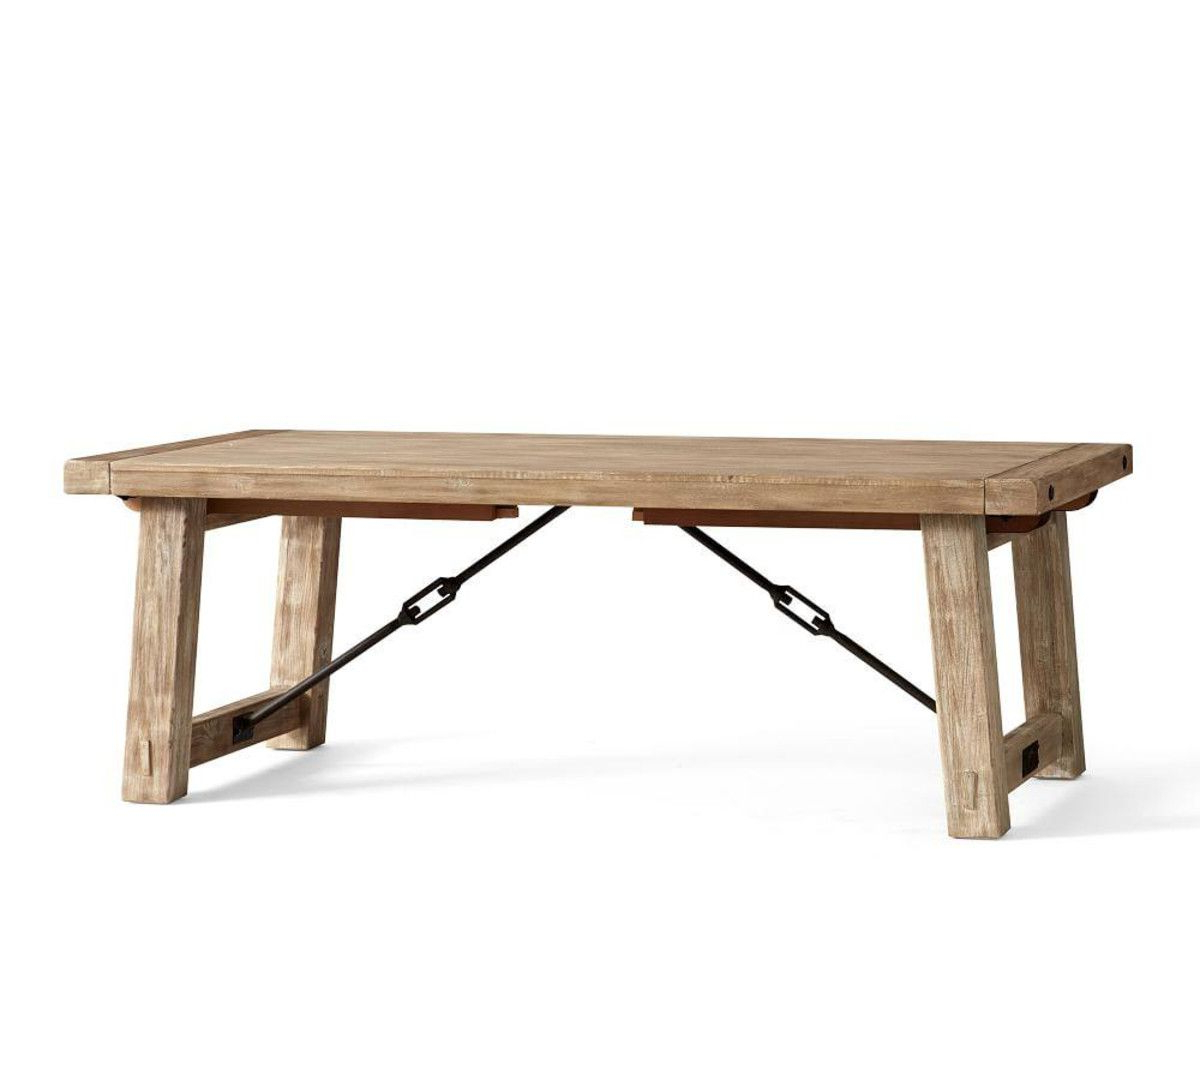 Newest Benchwright Extending Dining Table, Seadrift